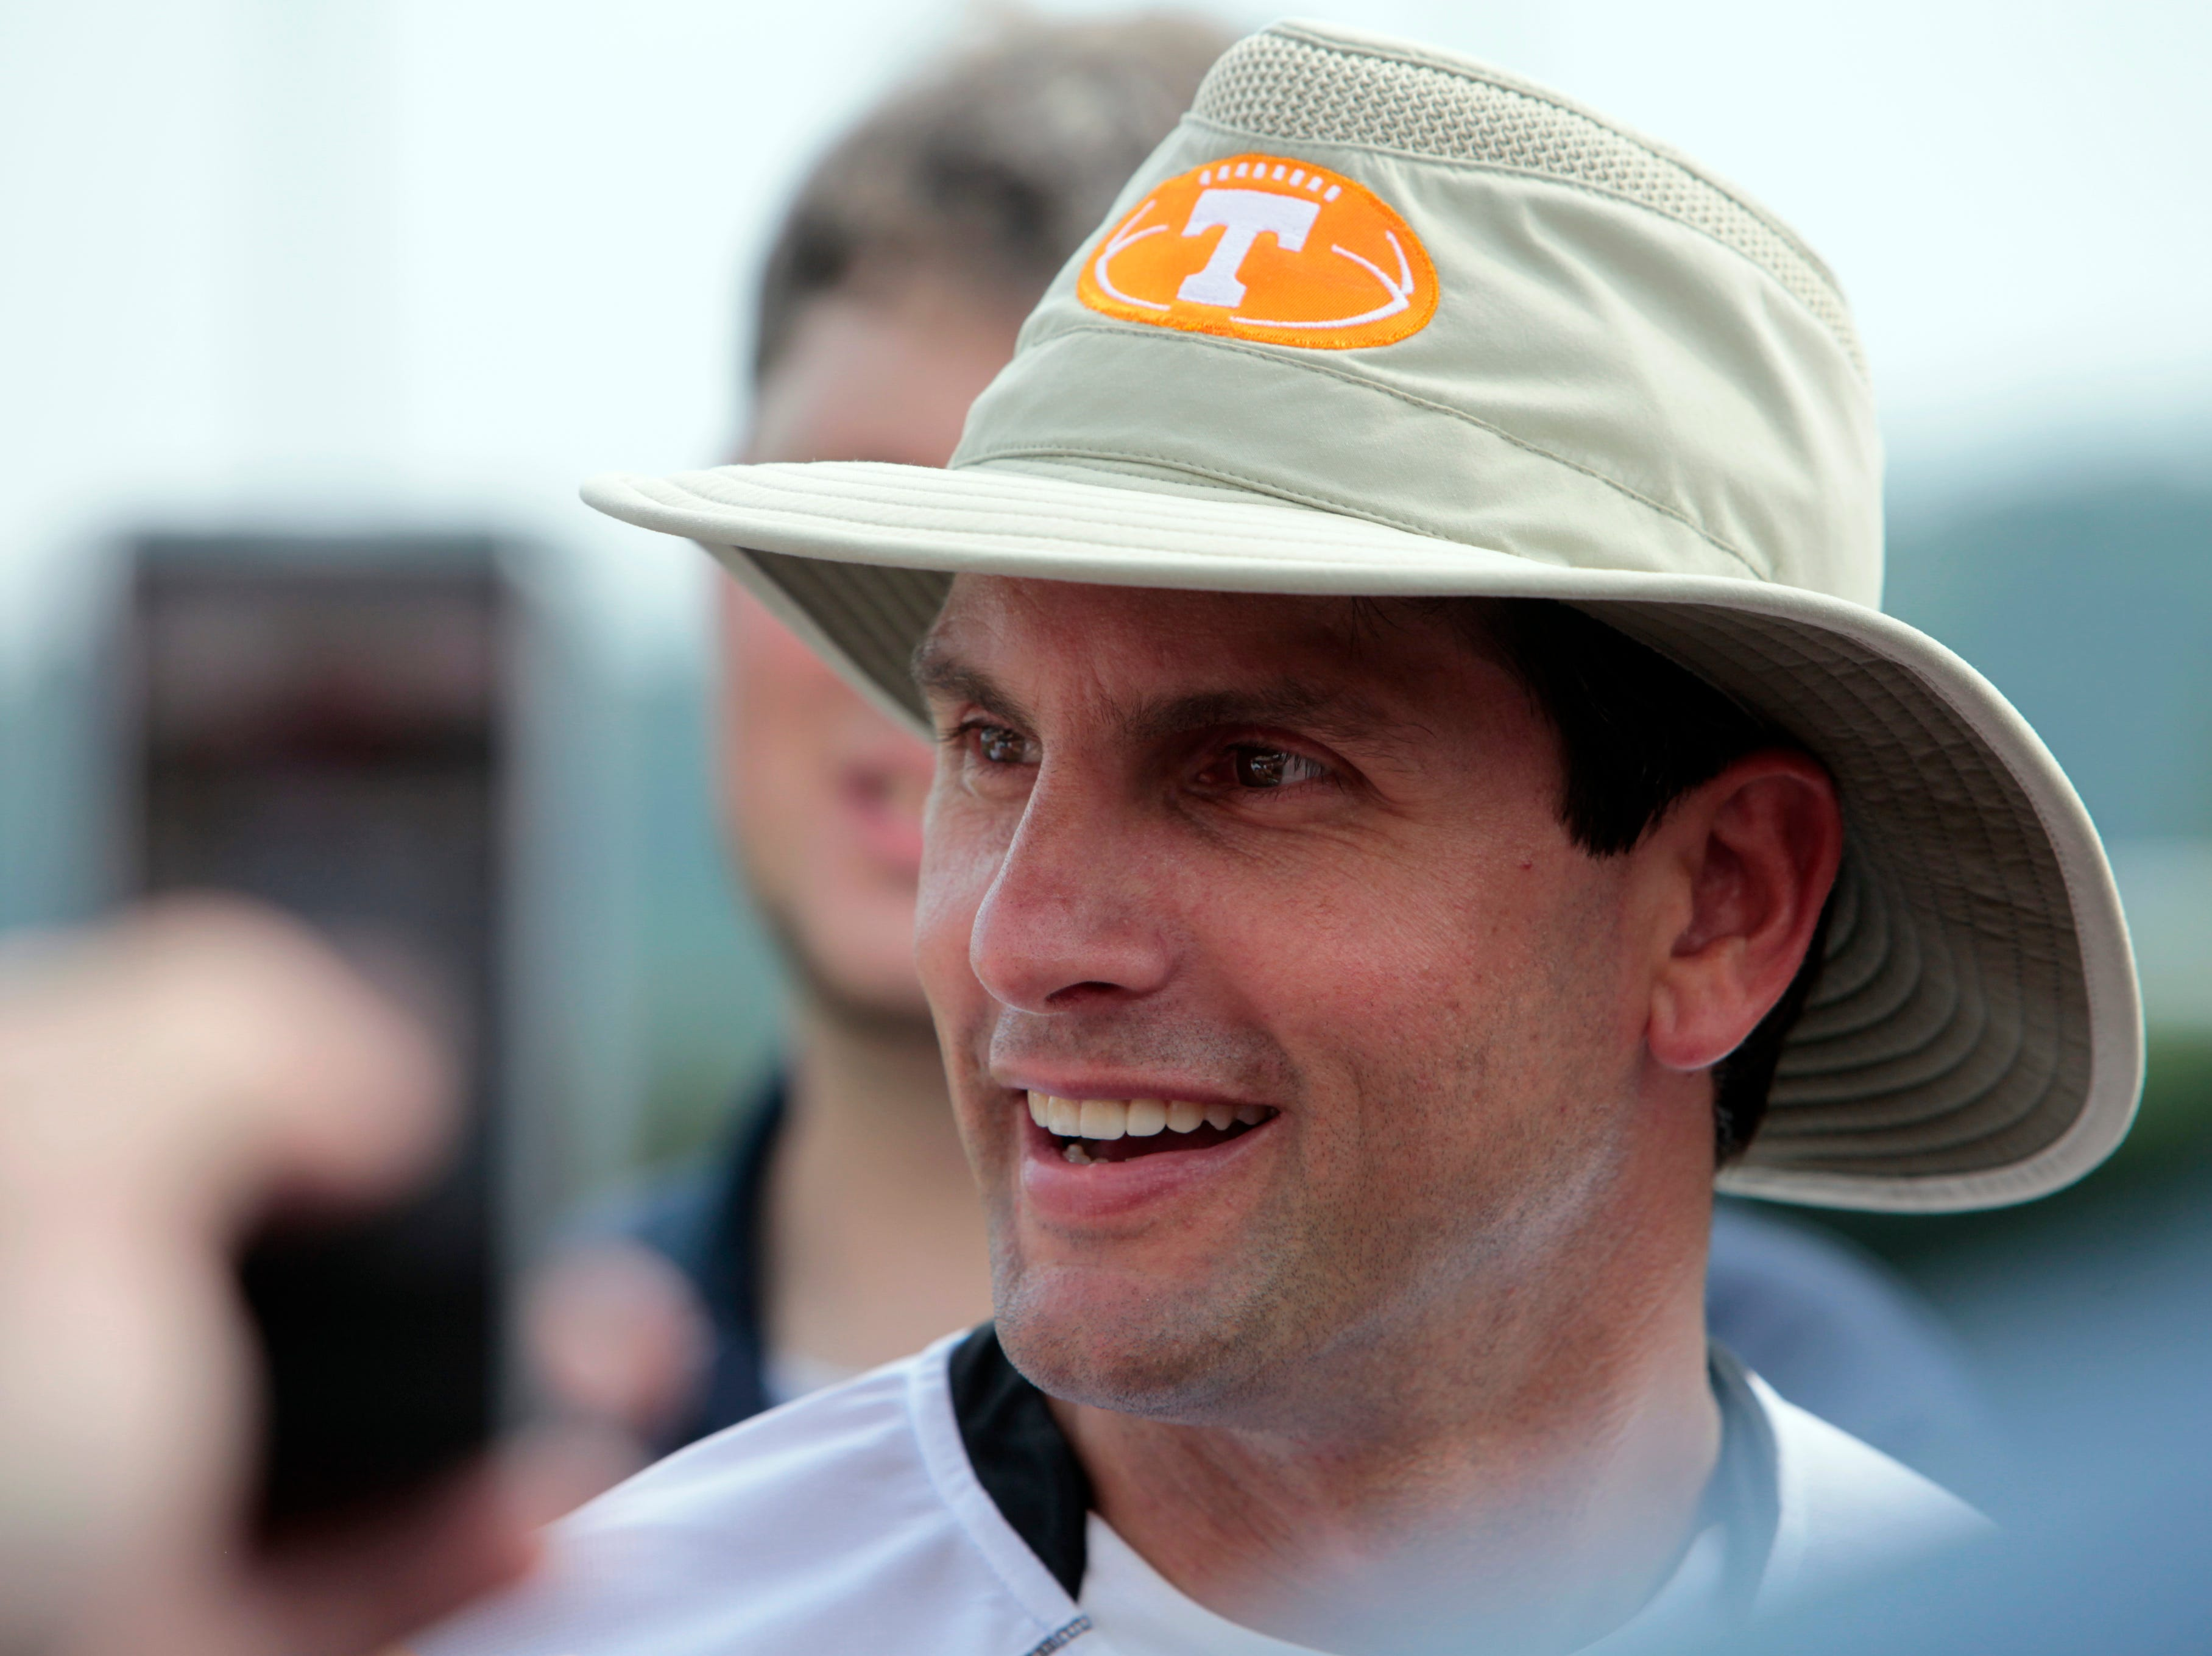 Head coach Derek Dooley talks to the media after the Vols' first official practice of the season at Haslam Field at the University of Tennessee Wednesday, Aug. 4, 2010.